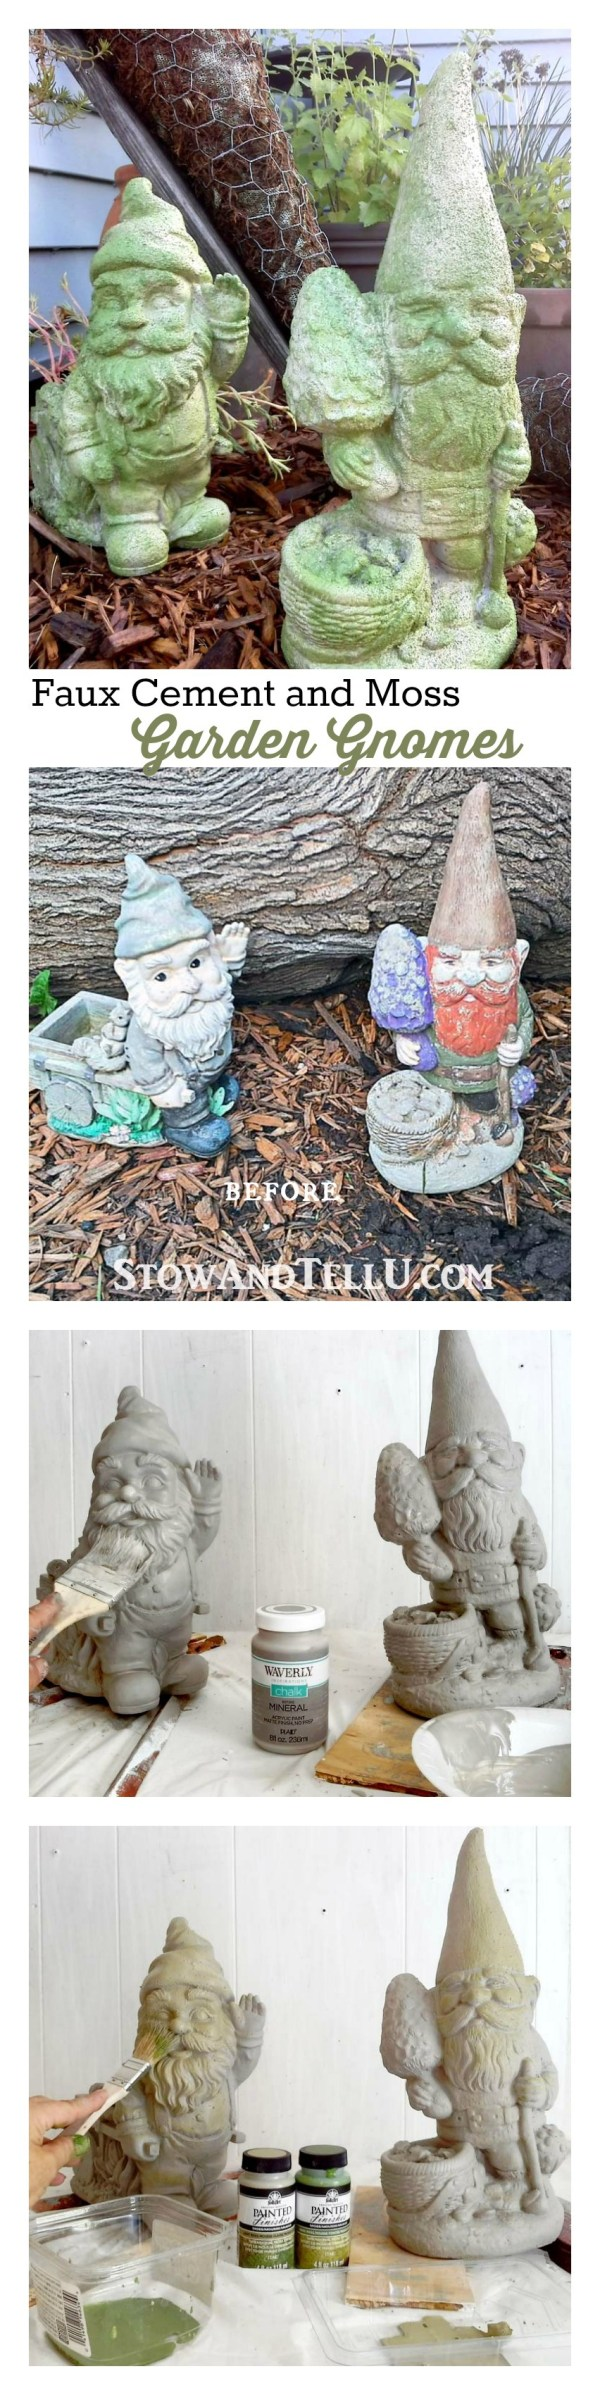 faux cement chalk paint technique - fake moss paint garden gnomes - StowAndTellU.com